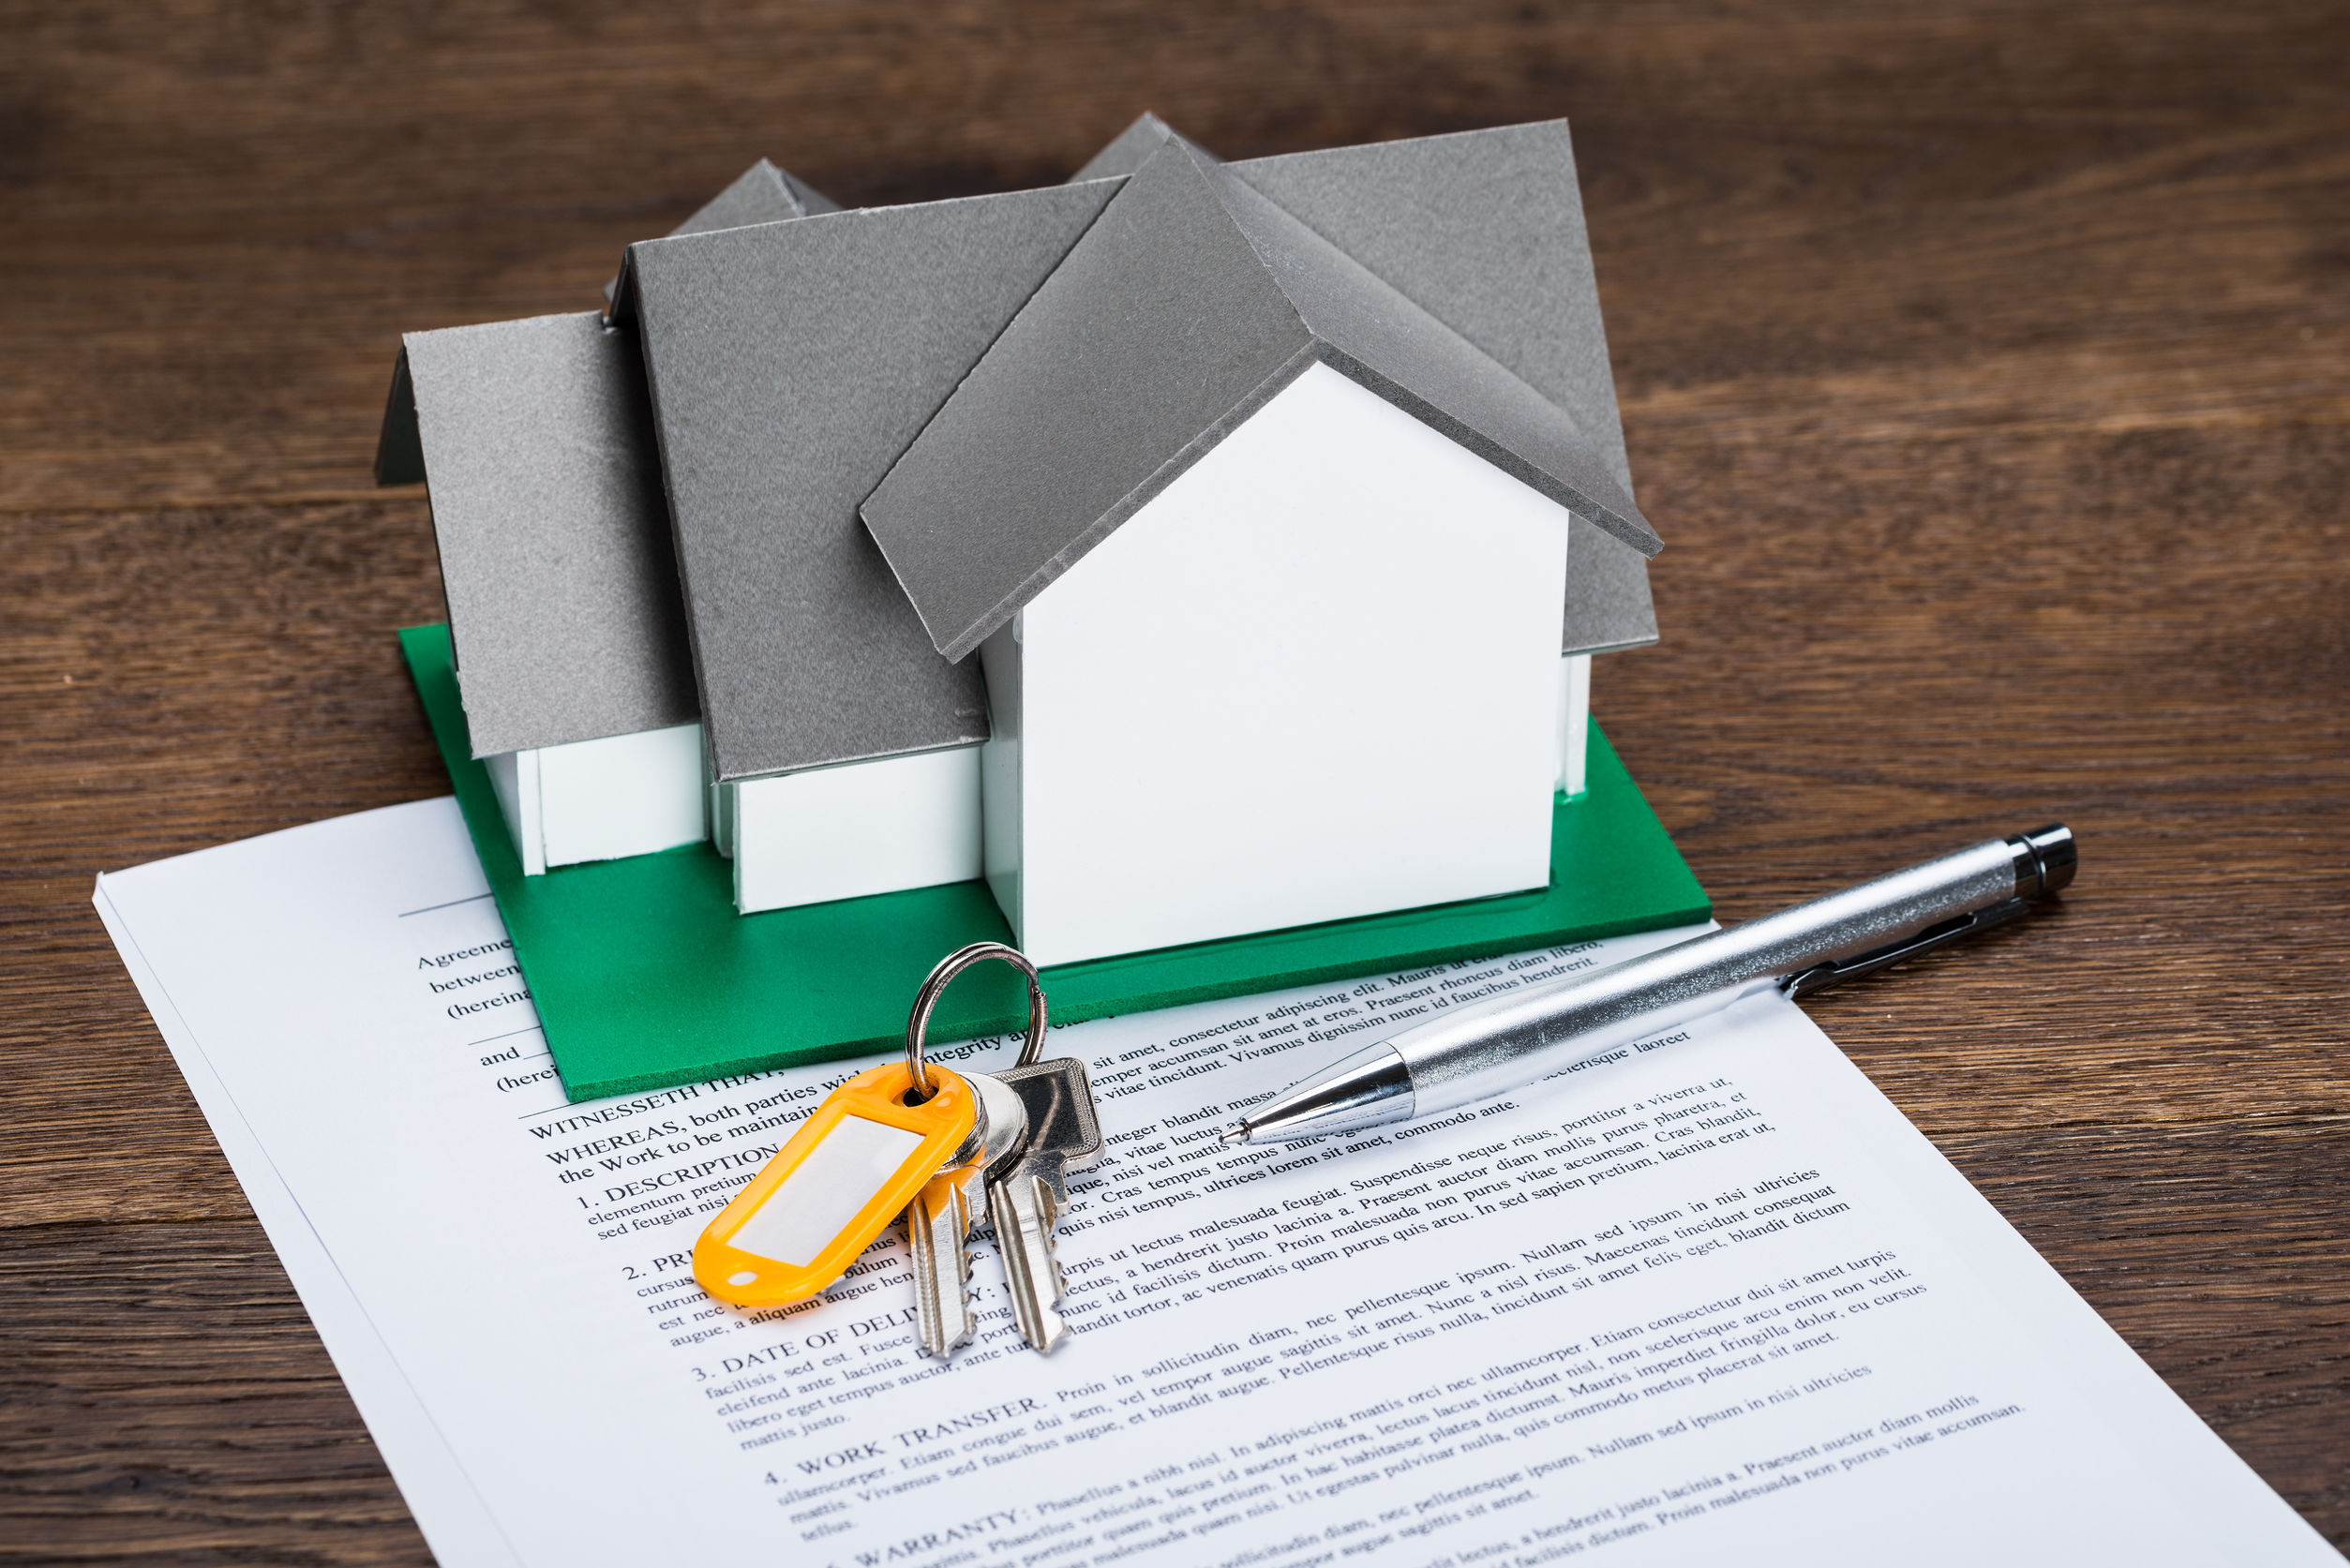 41317960 - house model with keys and ballpen on contract paper